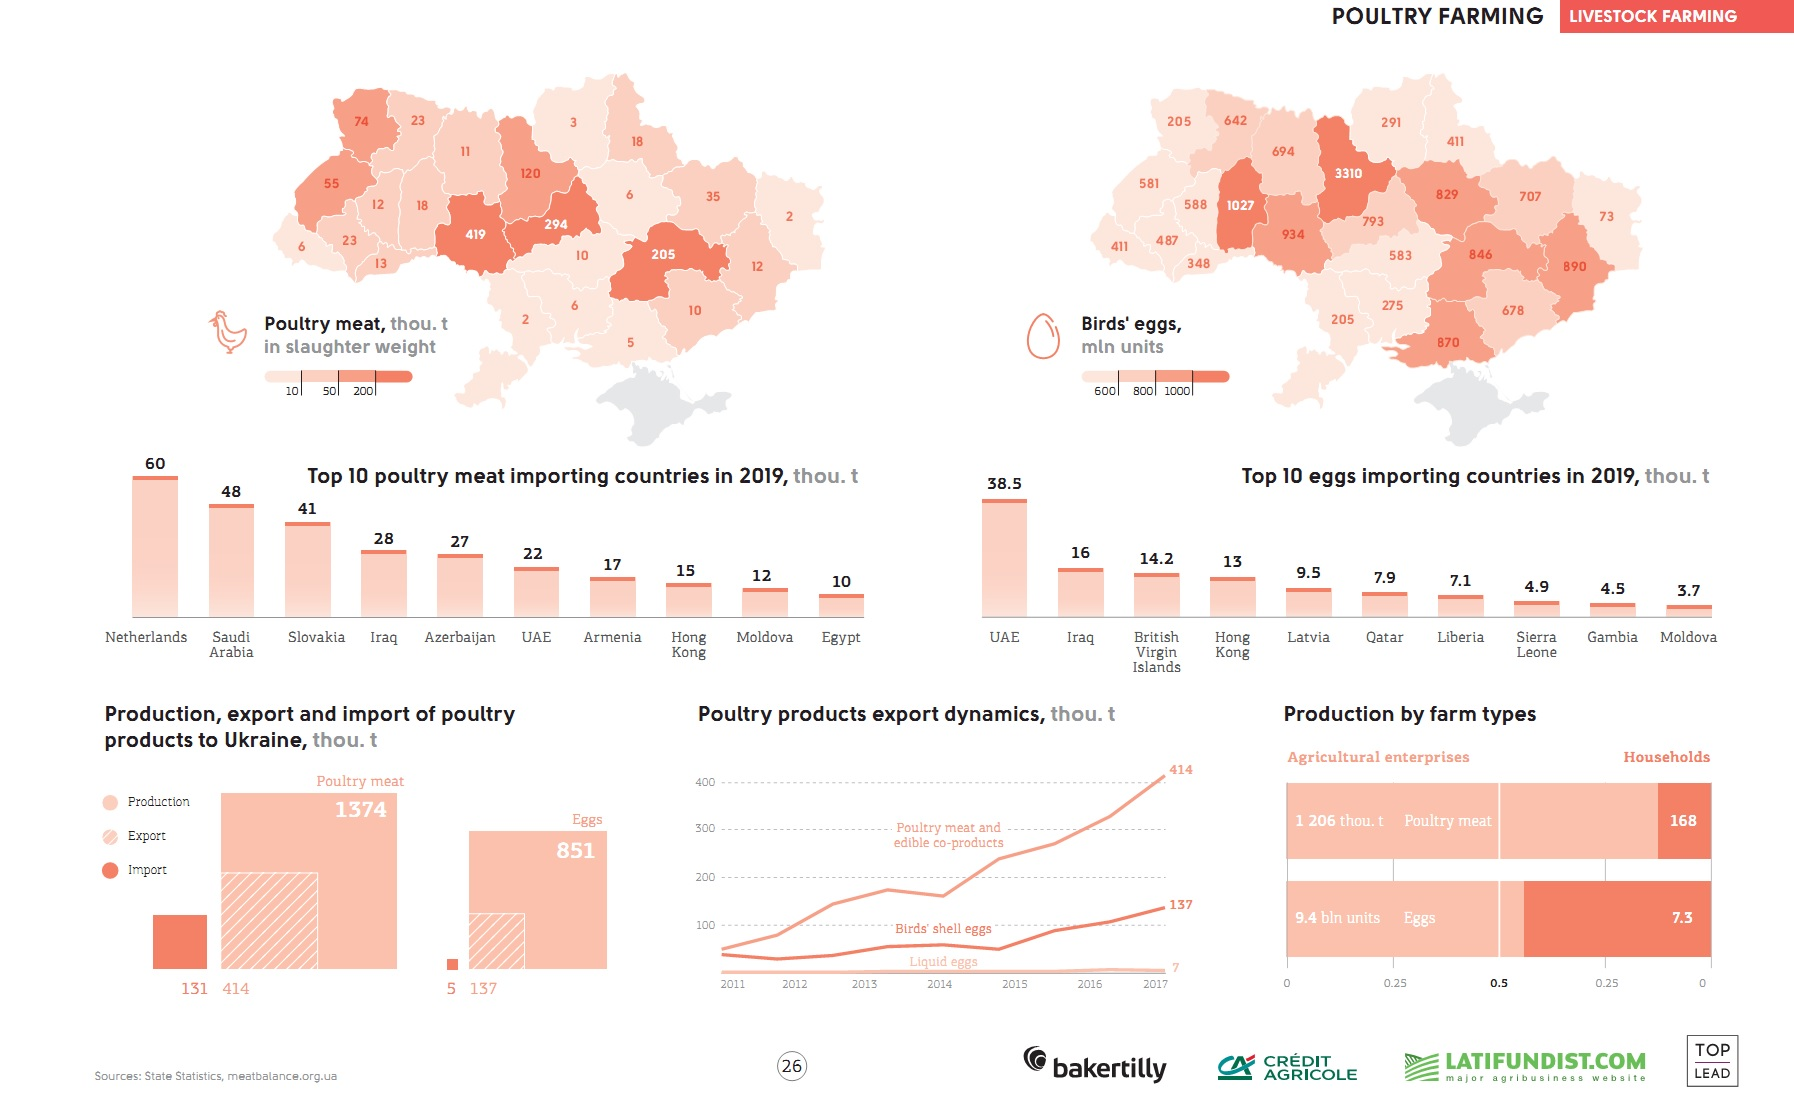 Poultry farming in Ukraine (click for full resolution)